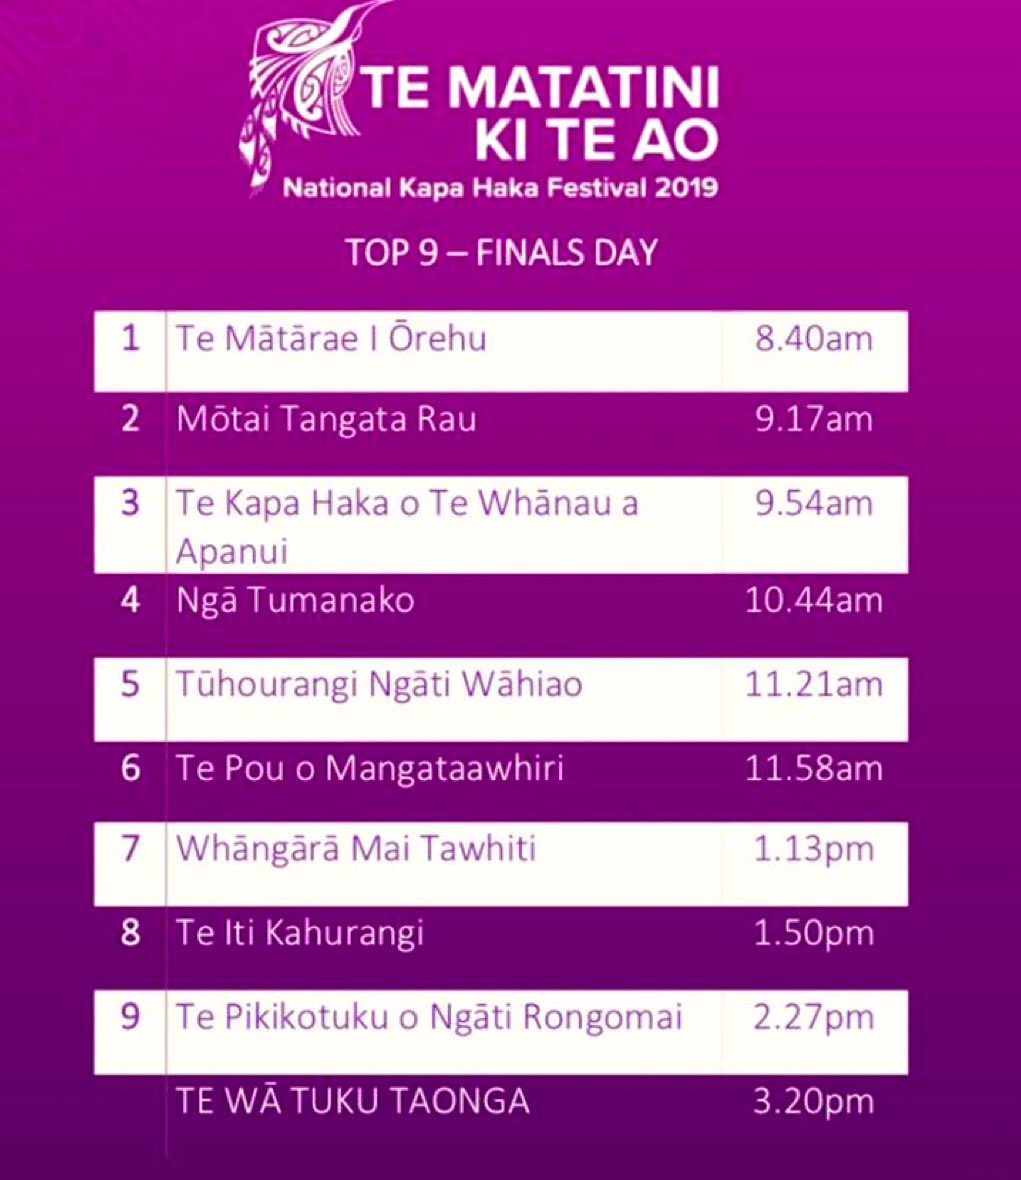 #TeMatatini finals today https://t.co/8YIKr4NNUh